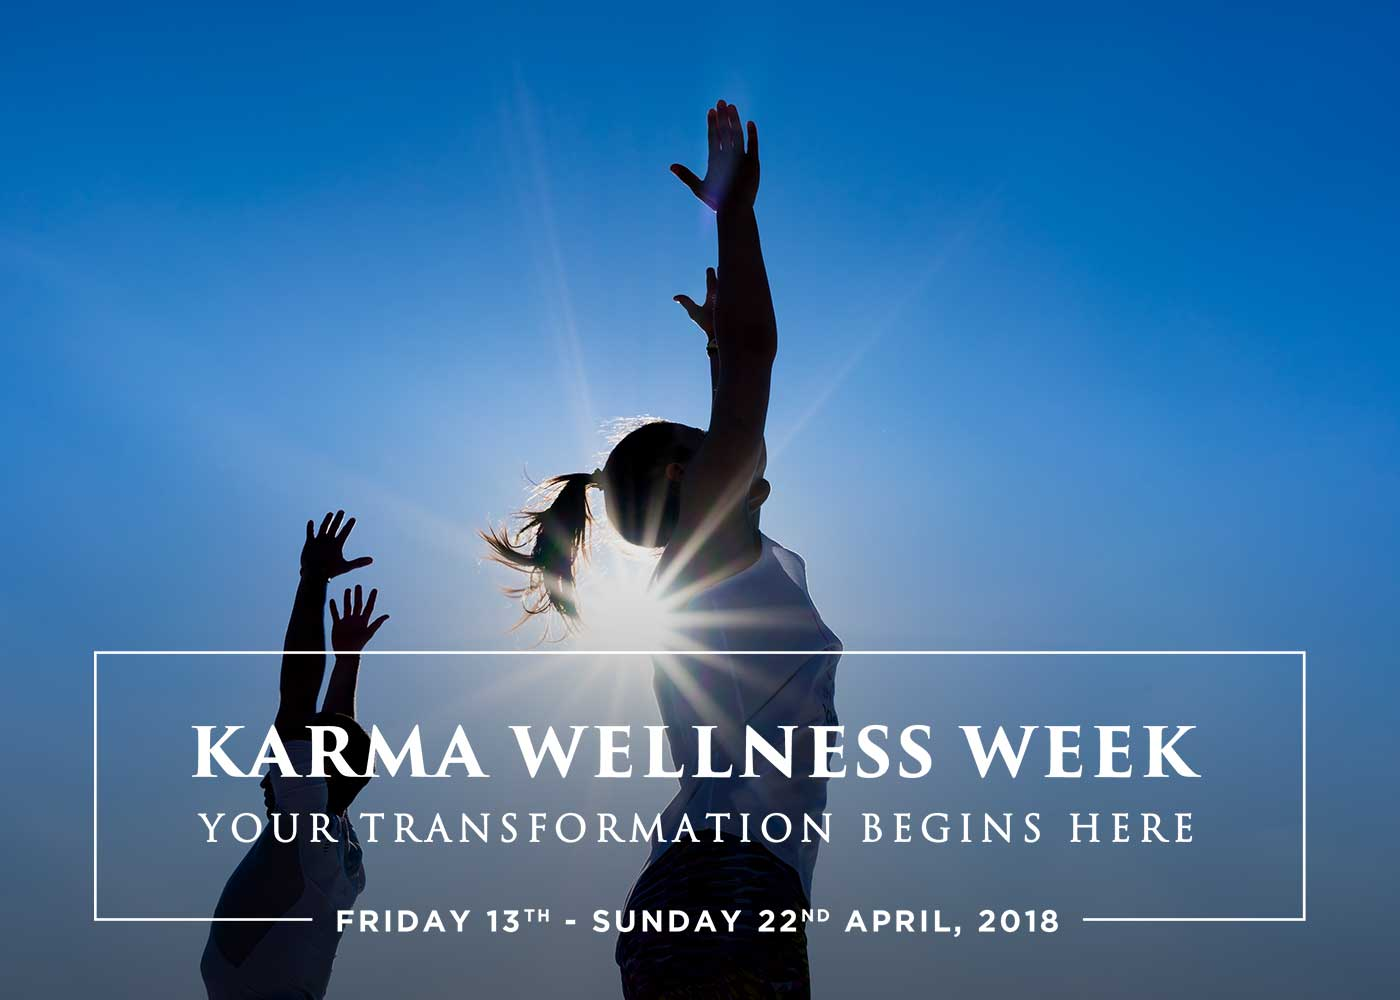 Karma Wellness Week